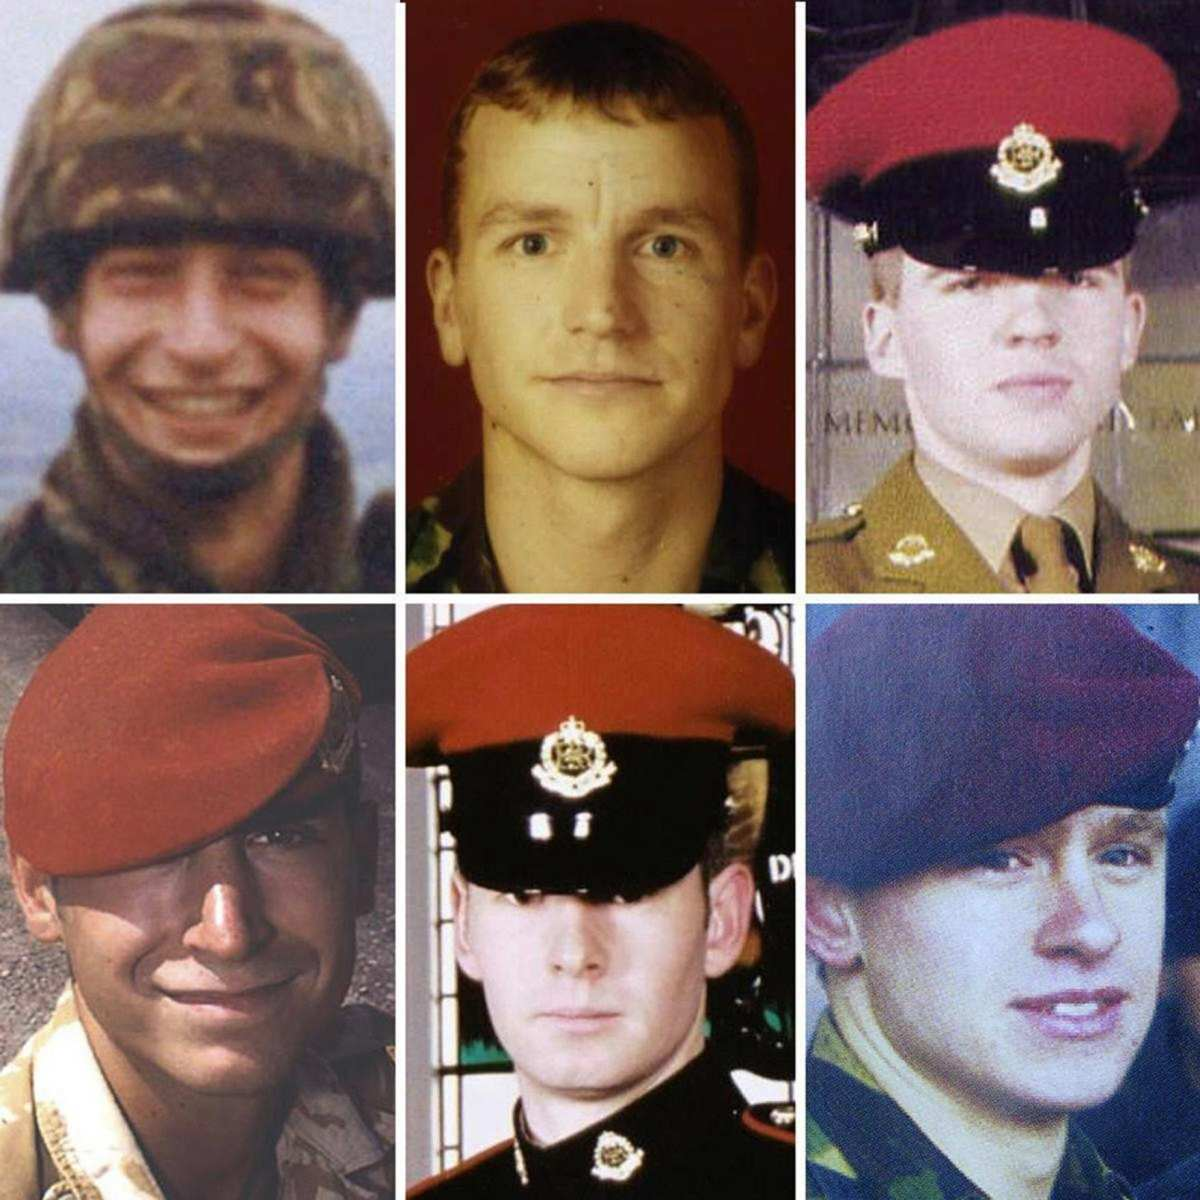 Sgt Simon Hamilton-Jewell, from Chessington; Cpl Russell Aston, from Swadlincote; Cpl Paul Long, from Colchester, Cpl Simon Miller, from Washington; L Cpl Ben Hyde, from Northallerton, and and L Cpl Thomas Keys, from Bala